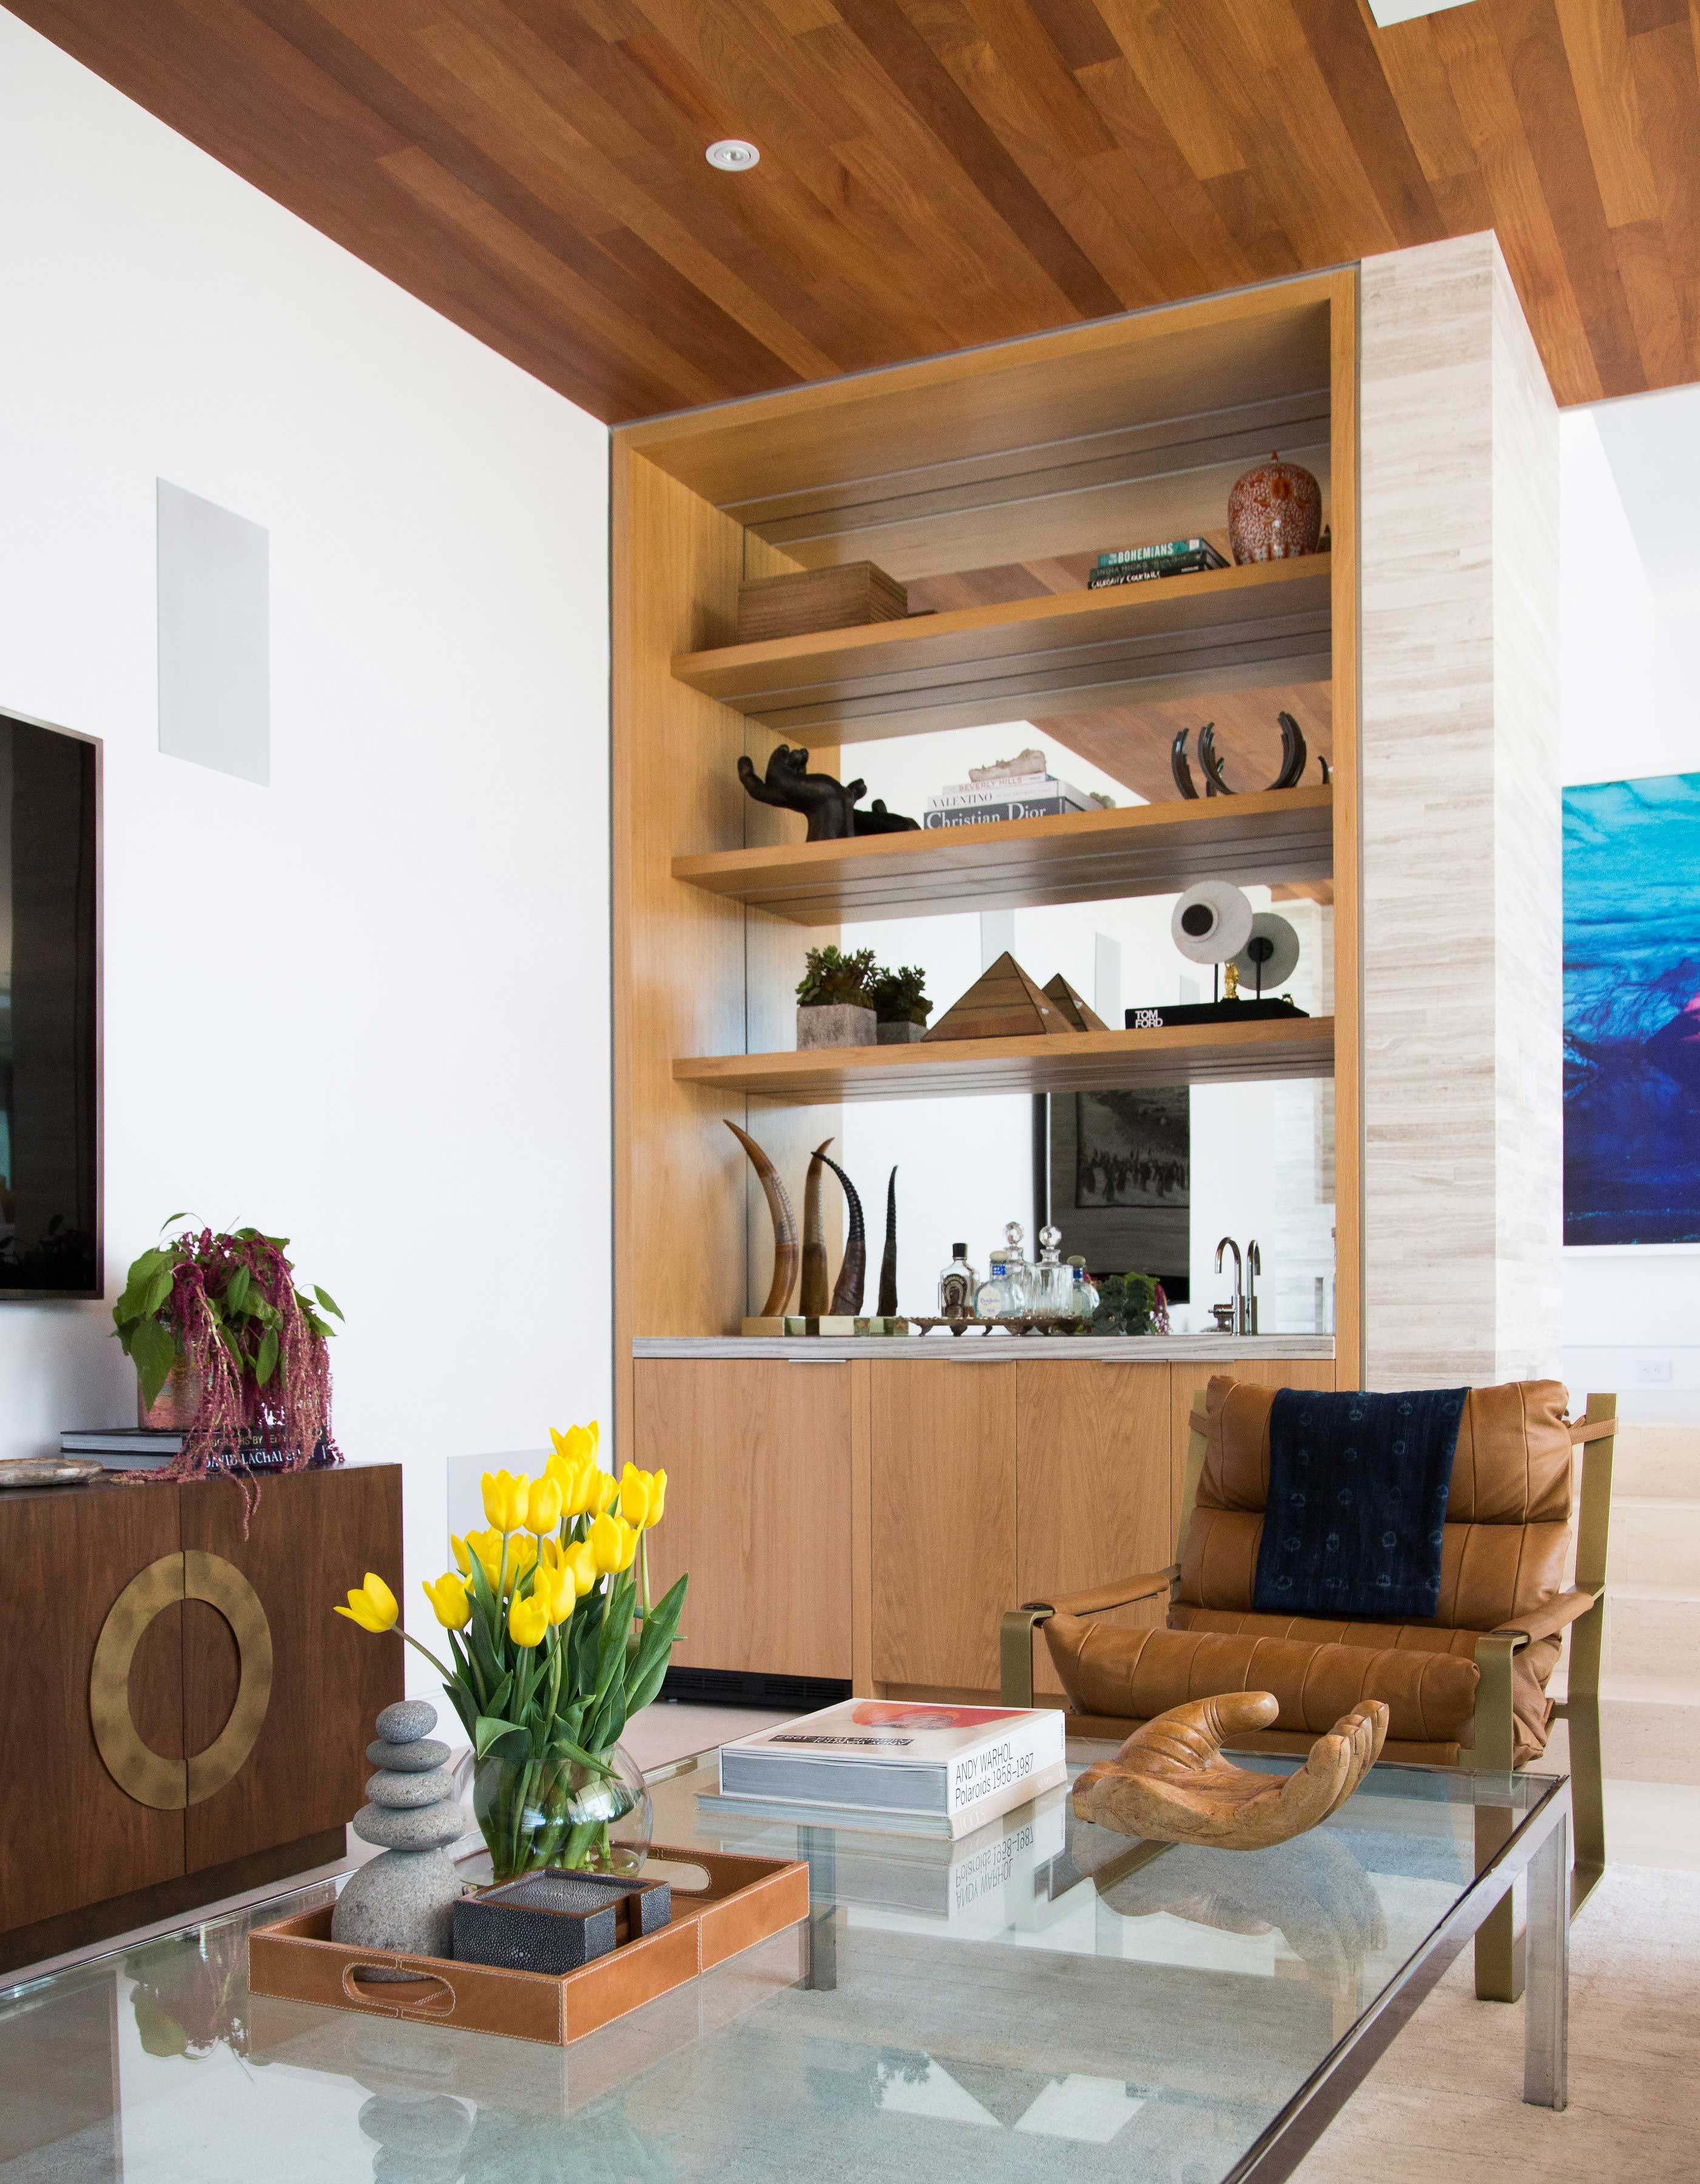 blackband_design_project_bel-air_sunken_living_room_7